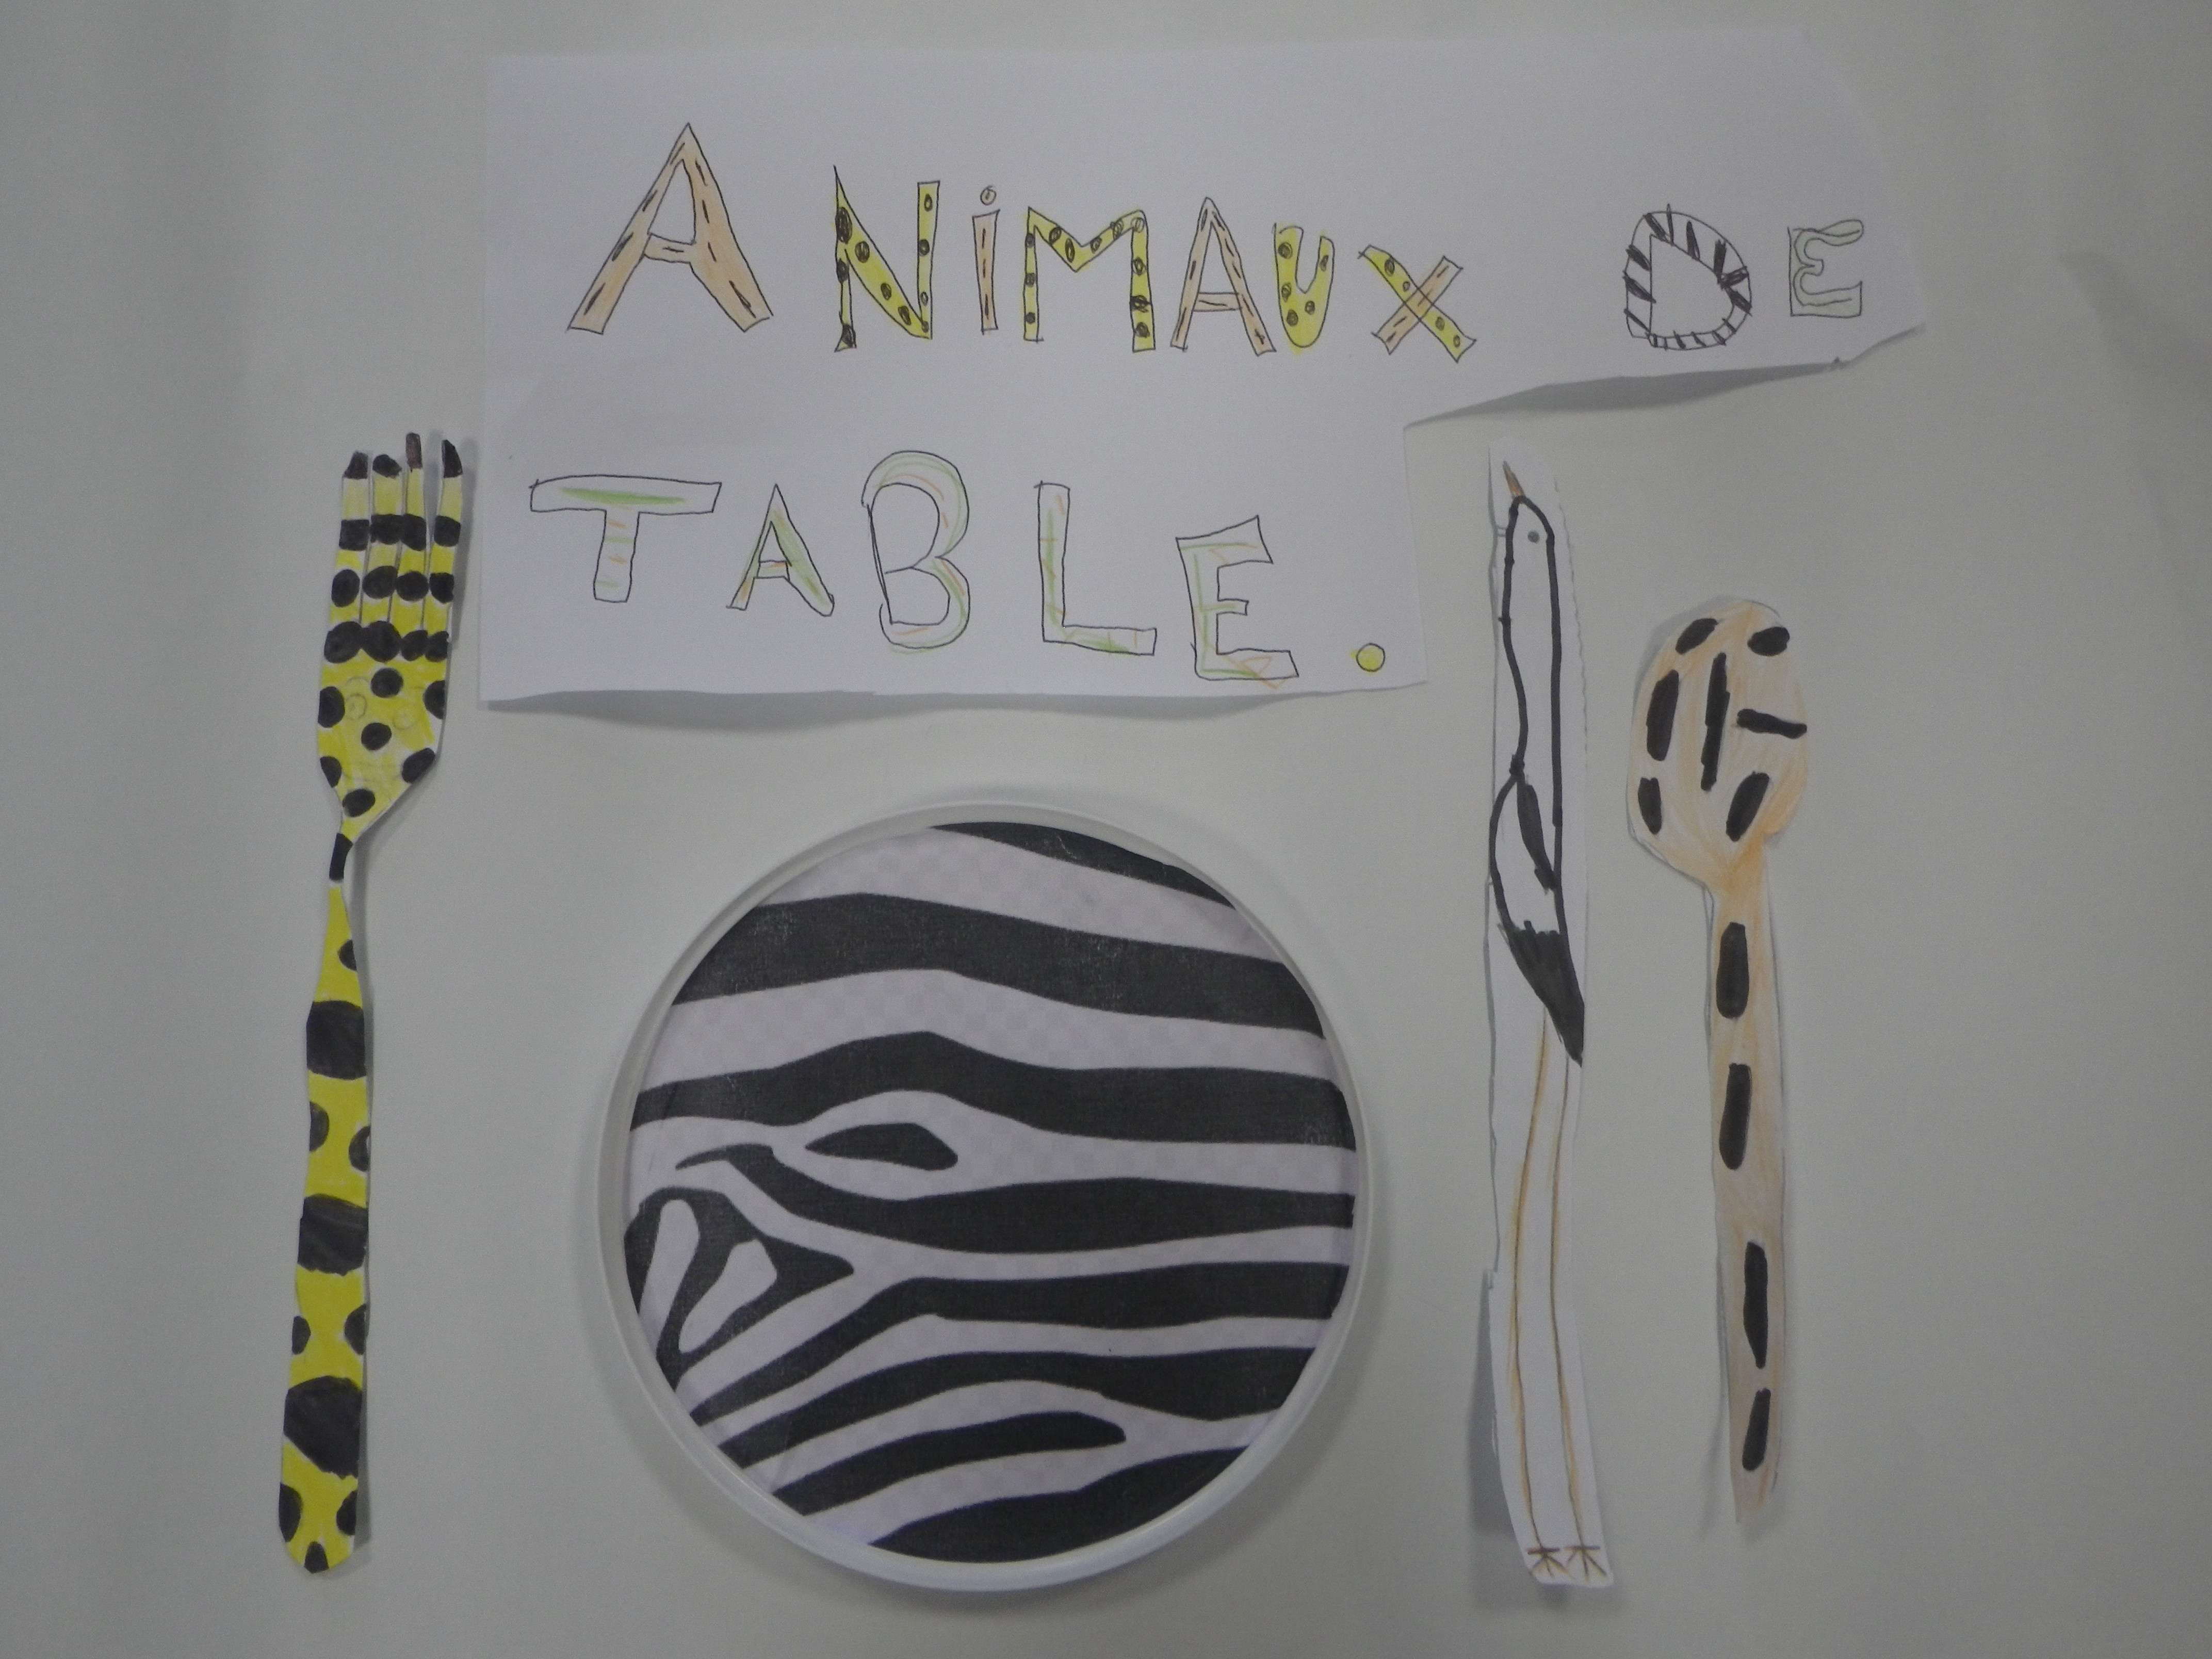 Erinn - Animaux de table